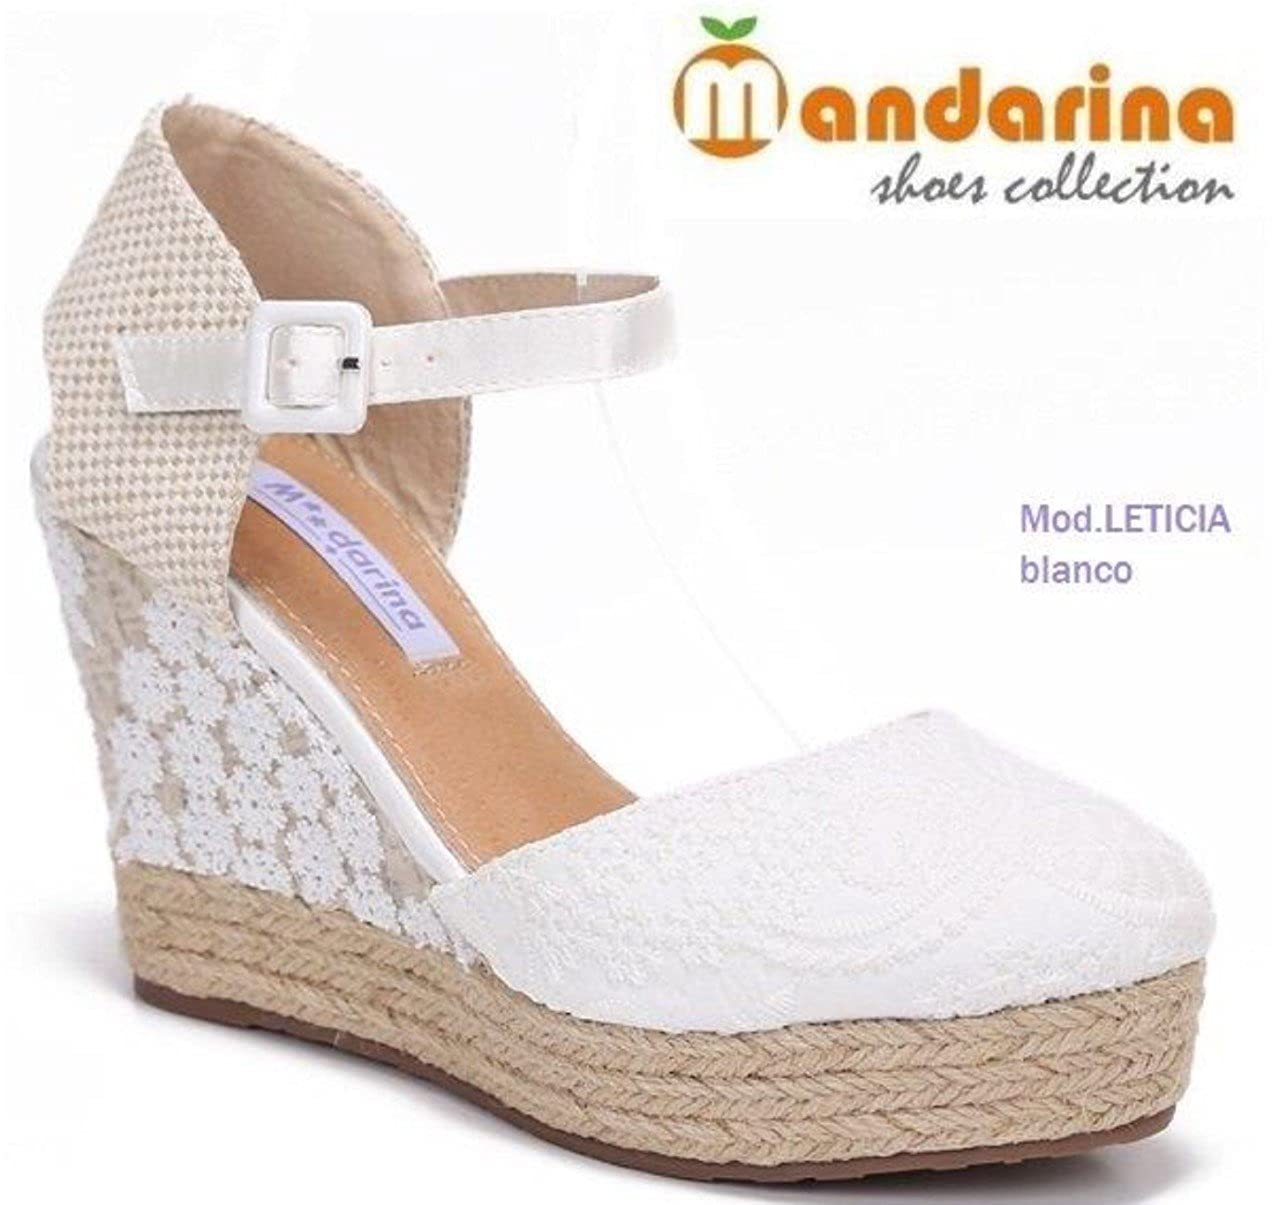 BUONAROTTI ESPARDEÑA Color Blanco Talla 41: Amazon.es: Zapatos y complementos